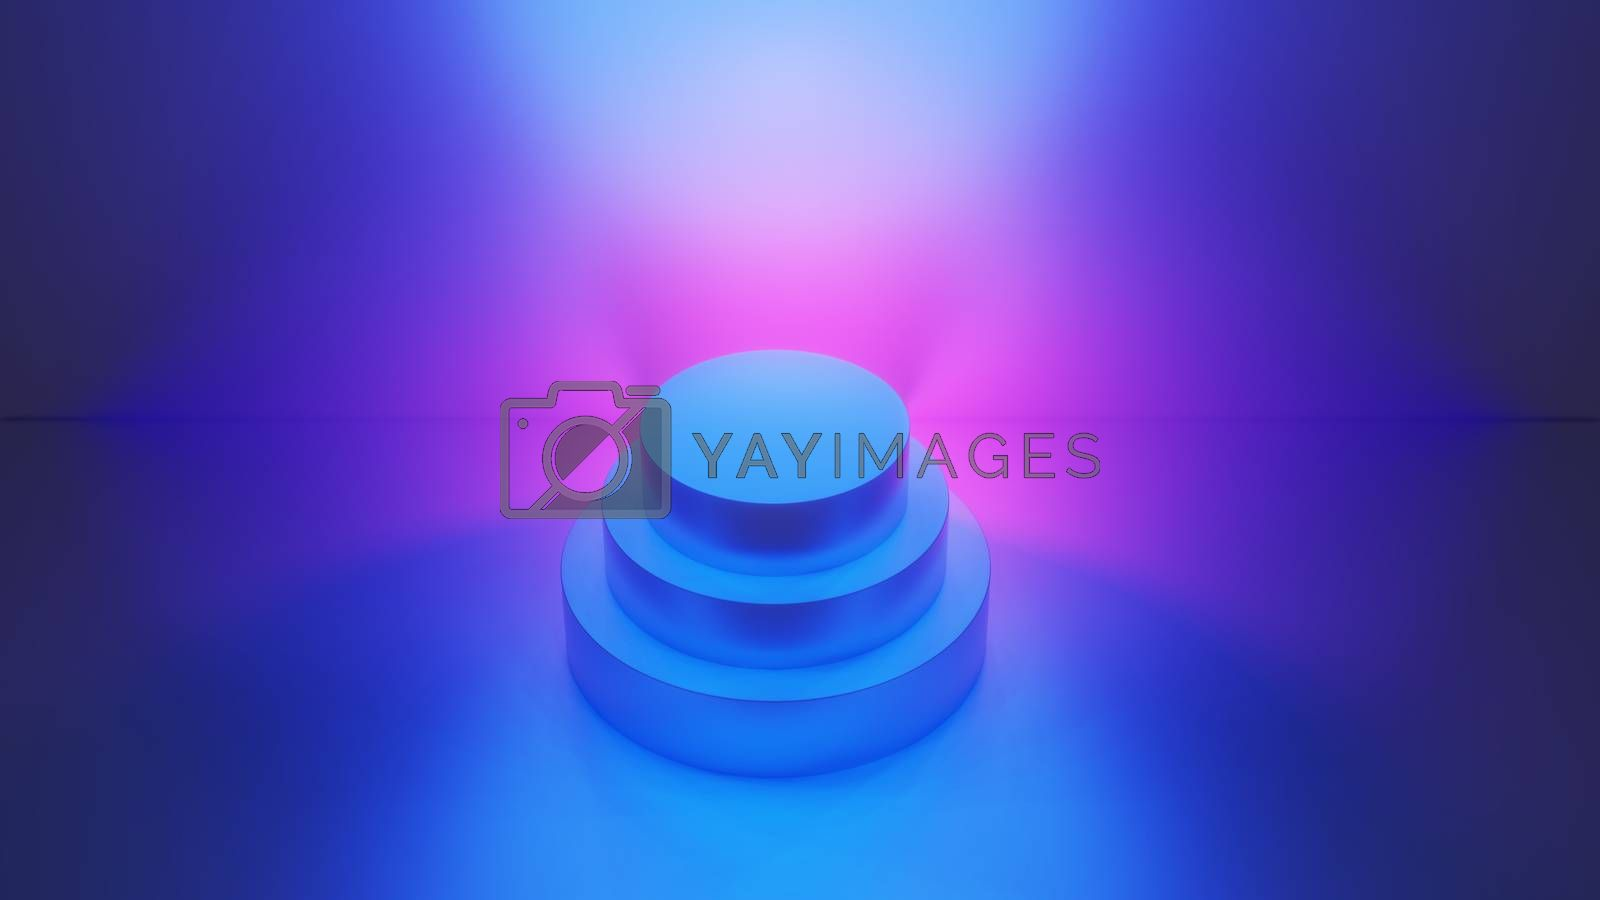 Product display stand for display of content design. Abstract fashion background, ultraviolet neon lights, pink blue vibrant colors, laser show. Banner for advertise product. 3D illustration